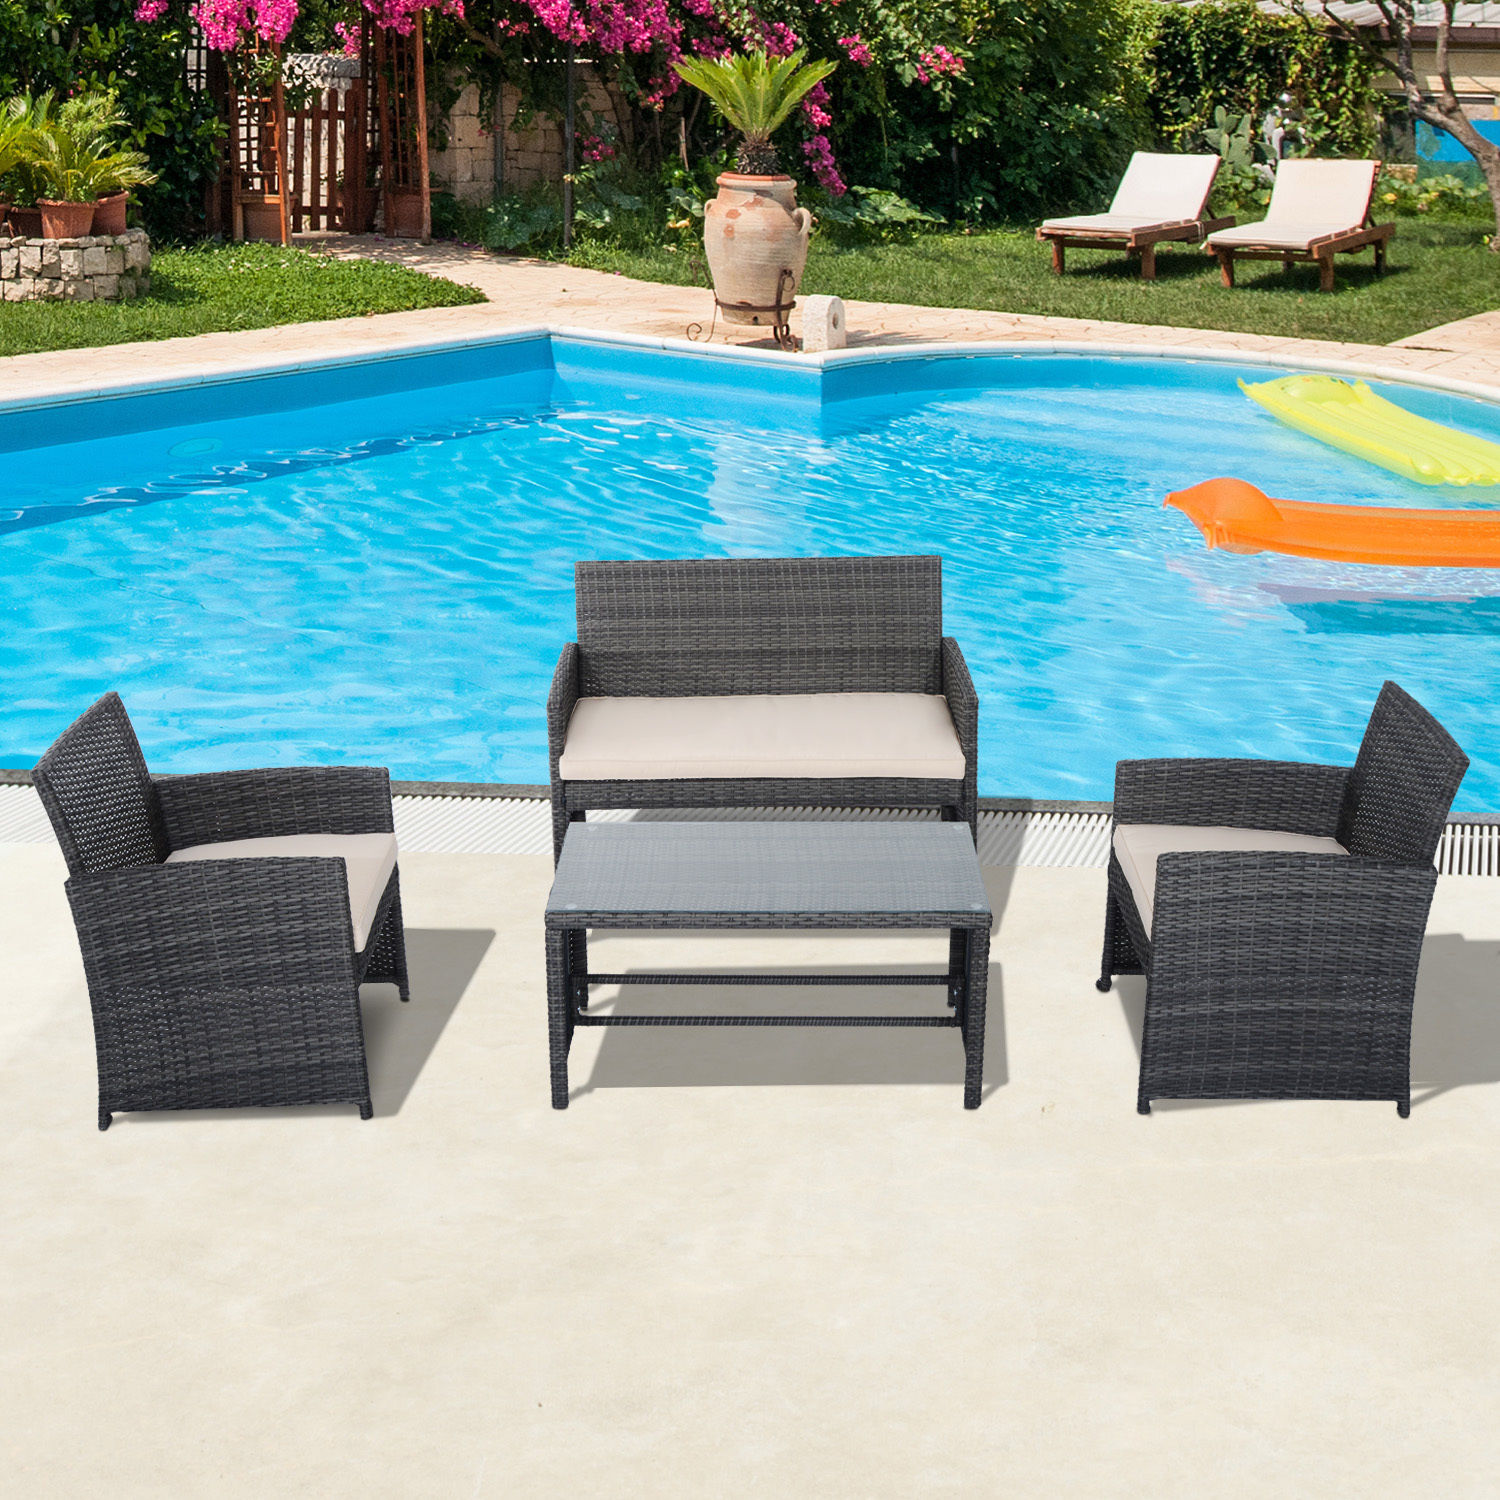 Details about 4PC Outdoor Rattan Wicker Sofa Set Sectional Patio Furniture Table Chair & 4PC Outdoor Rattan Wicker Sofa Set Sectional Patio Furniture Table ...